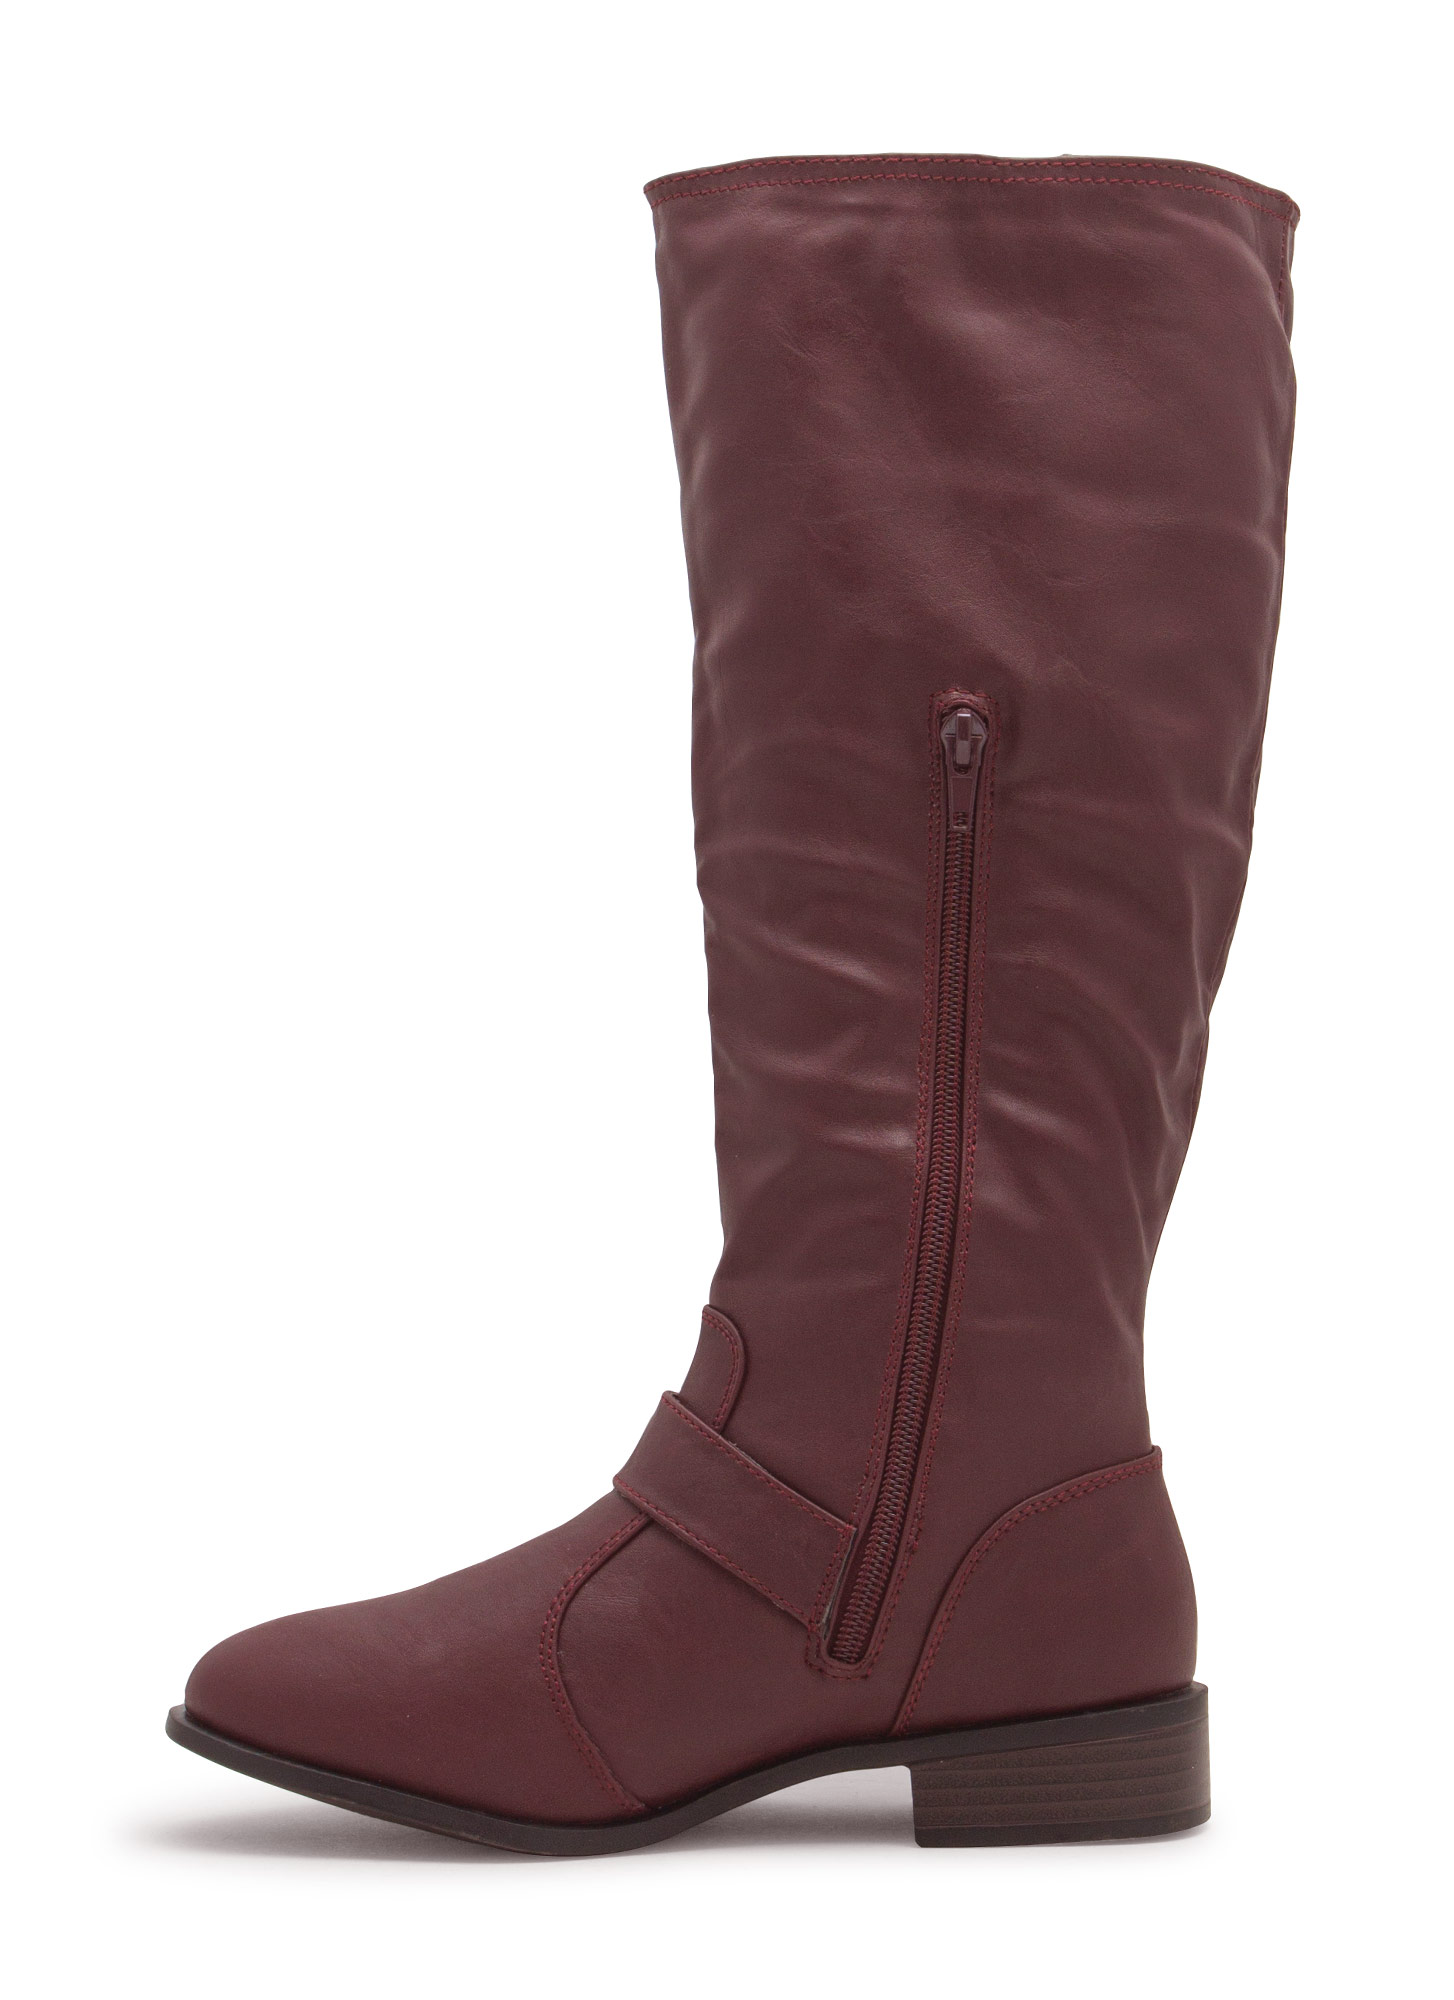 Buckle Strap Riding Boot OXBLOOD